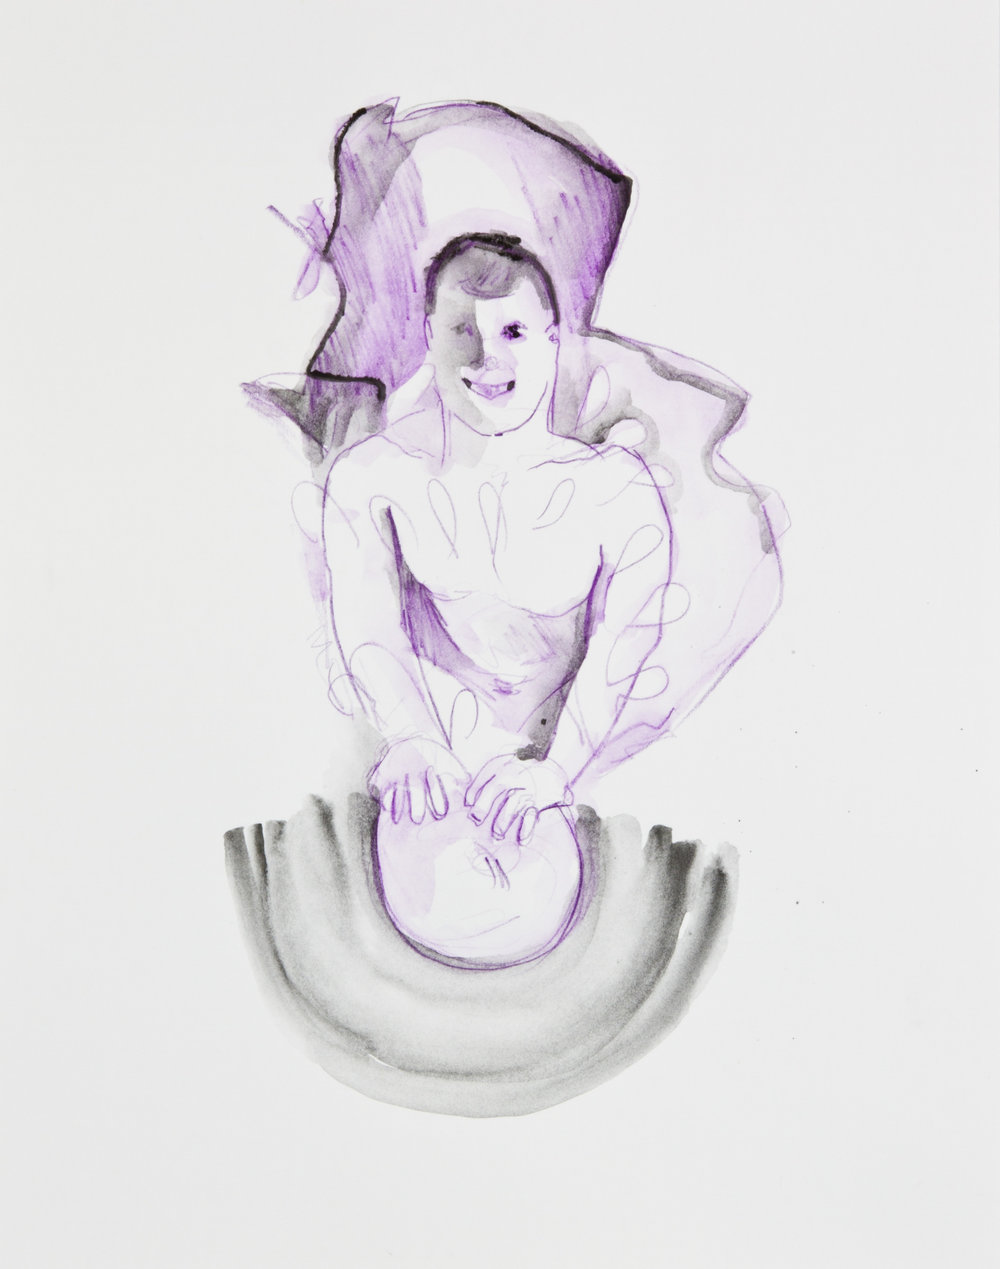 Antiperspirant, 2013, graphite, crayon and watercolor pencil on paper, 11x14 inches